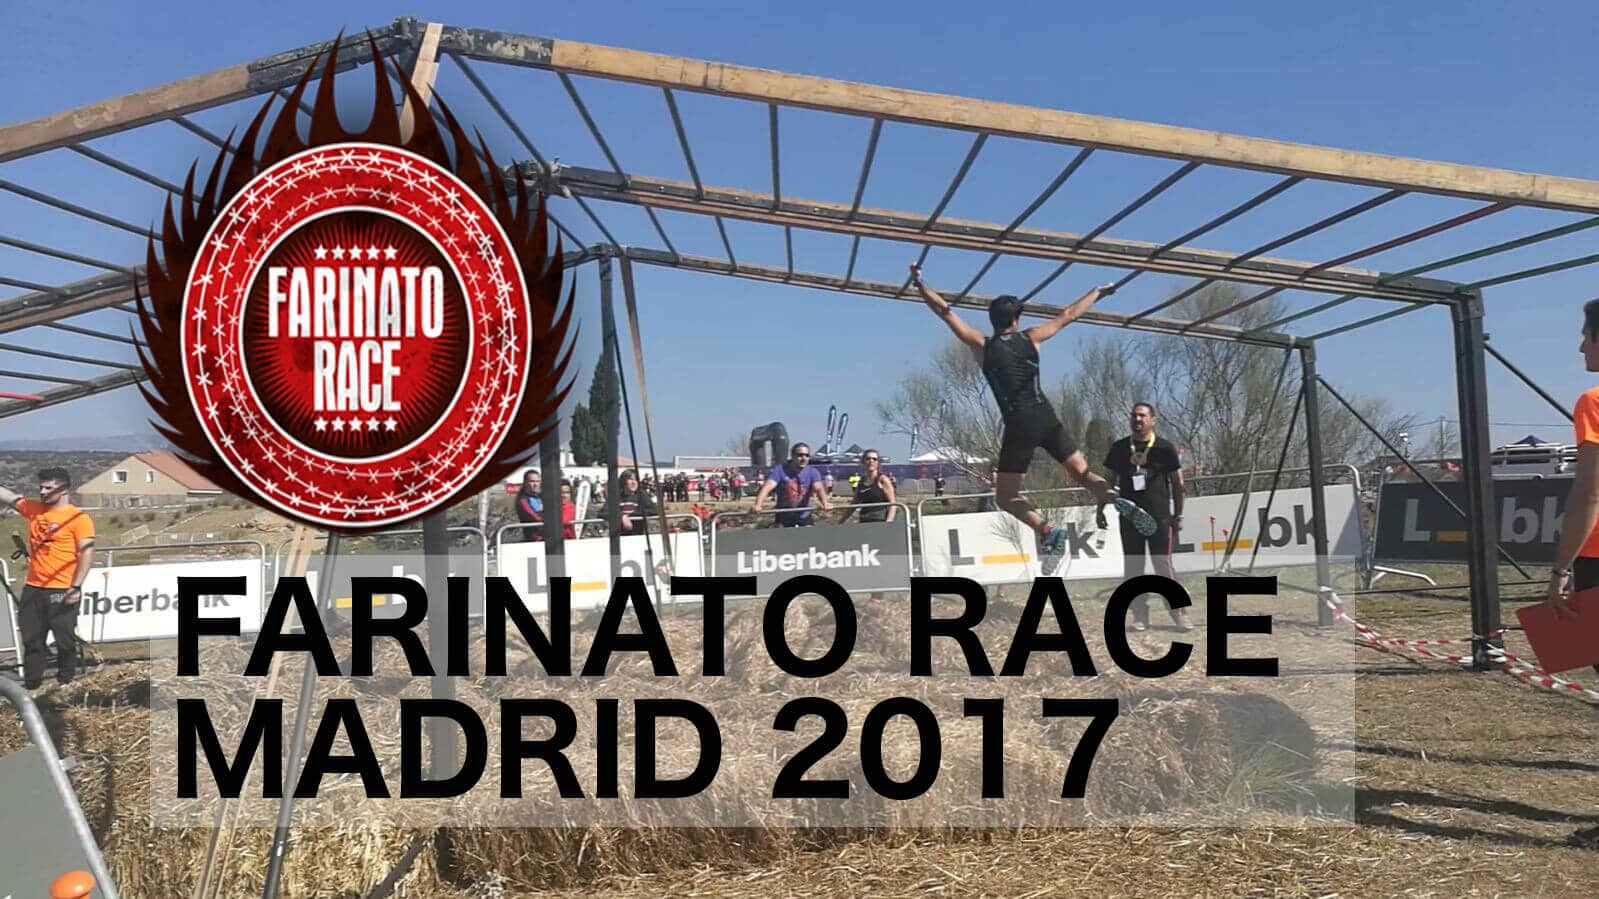 Farinato Race Madrid 2017